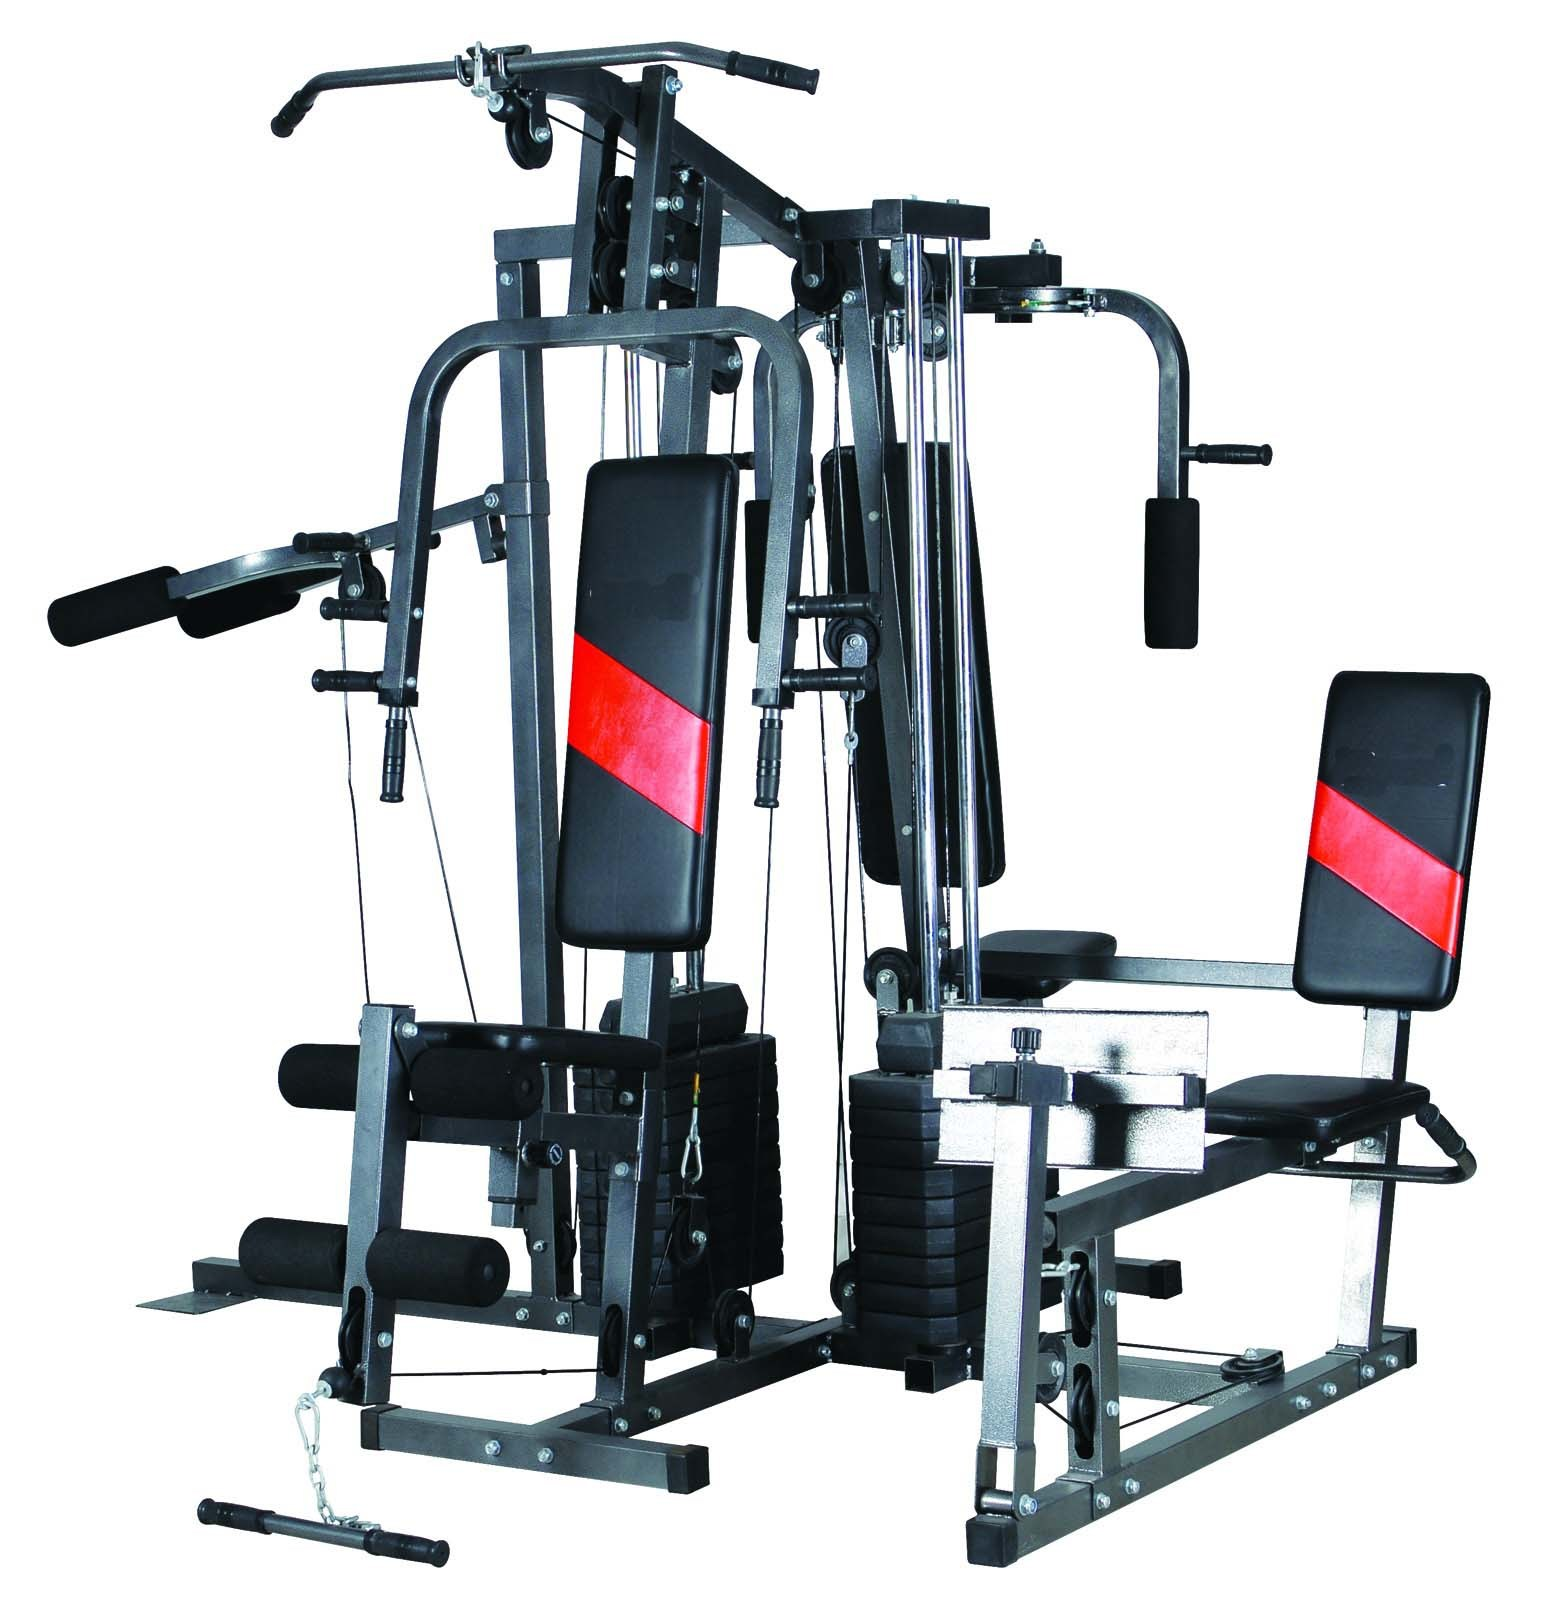 Maximuscle home gym dimensions crafts - Images of home gyms ...